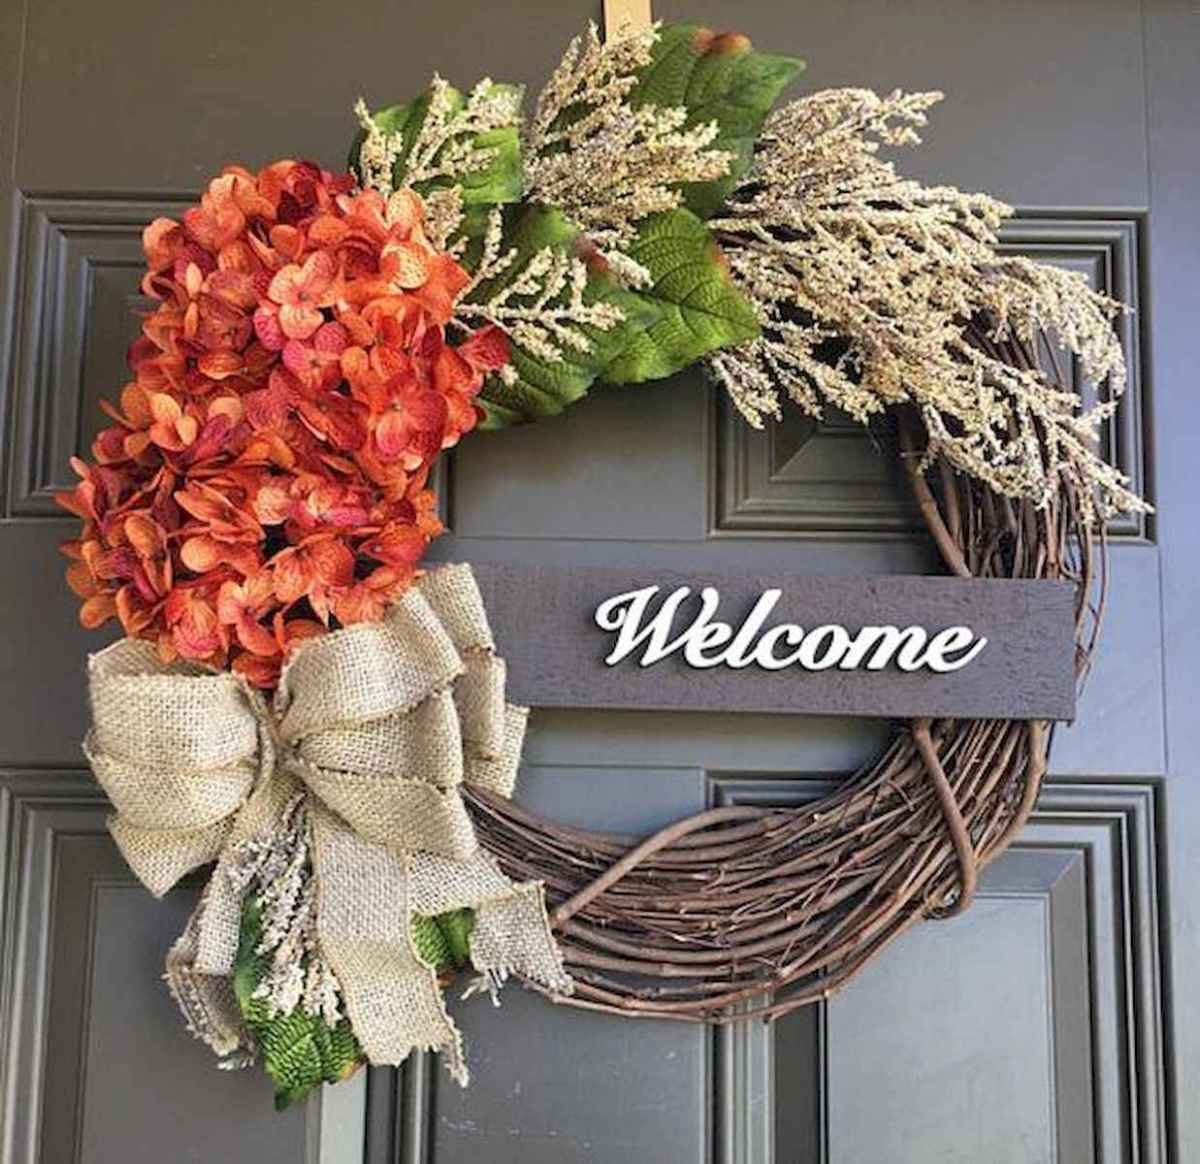 60 Favorite Spring Wreaths for Front Door Design Ideas And Decor (9)